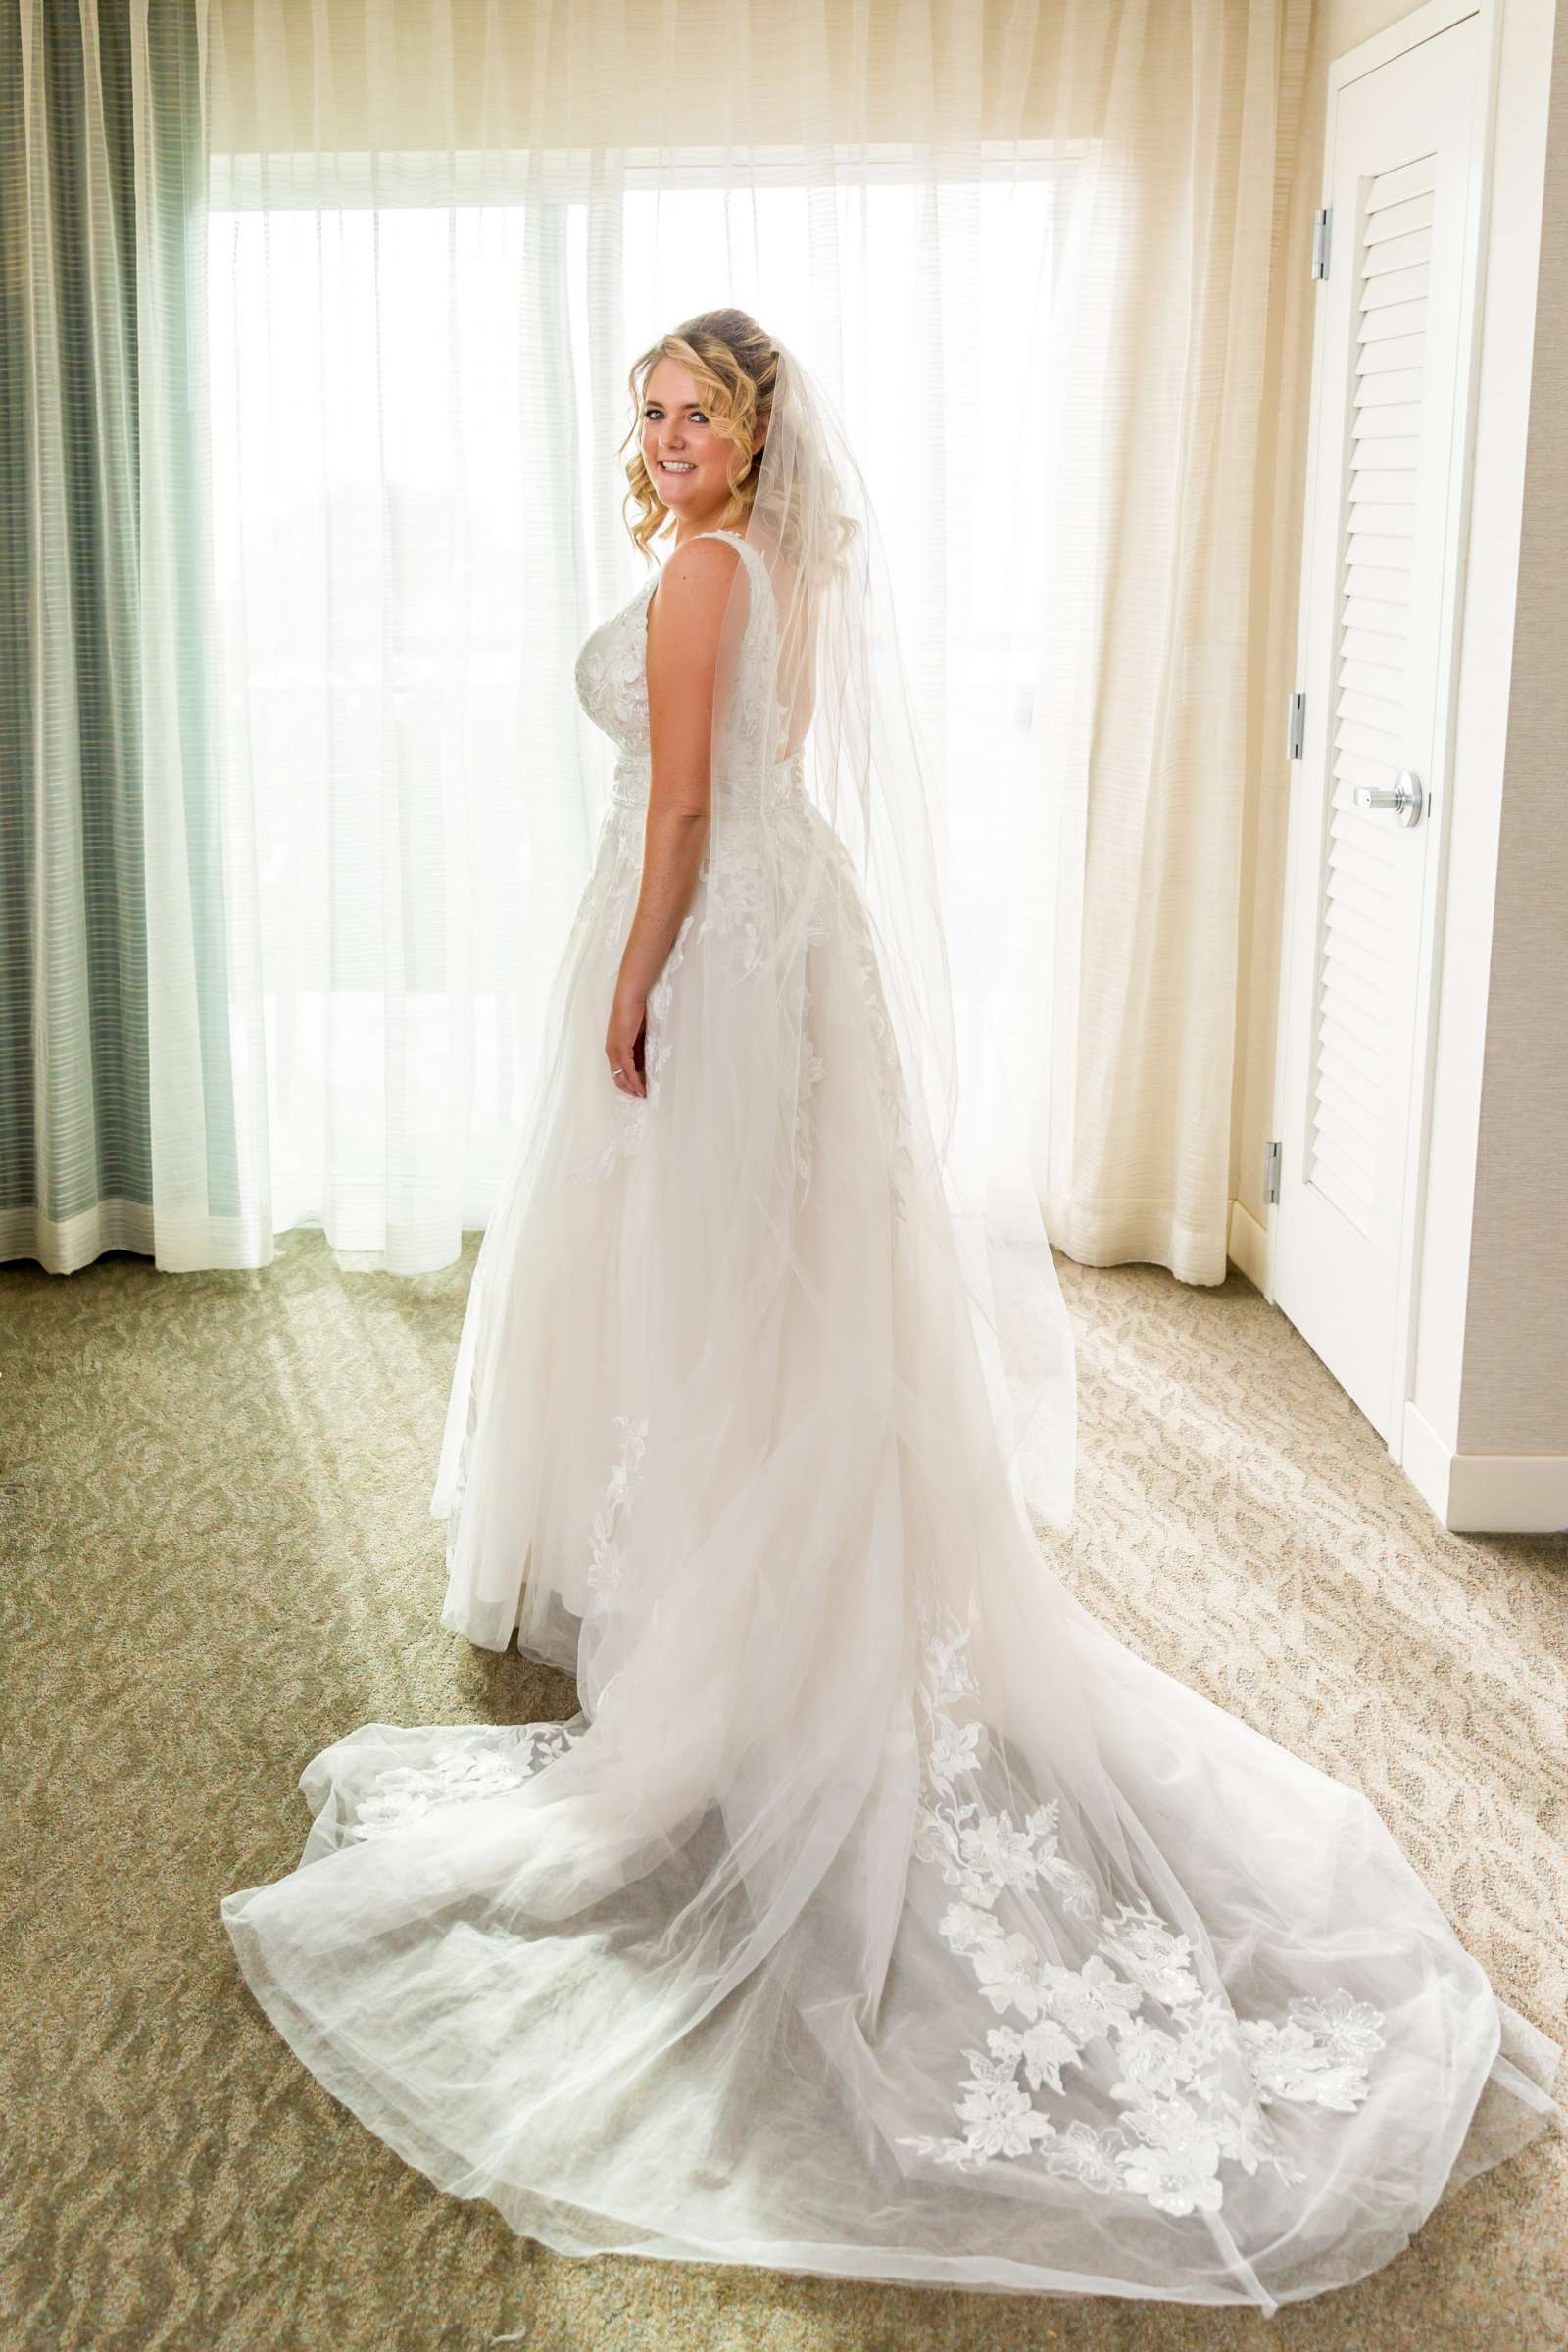 Cape Rey Carlsbad, A Hilton Resort Wedding, Michelle and Justin Wedding Photo #45 by True Photography